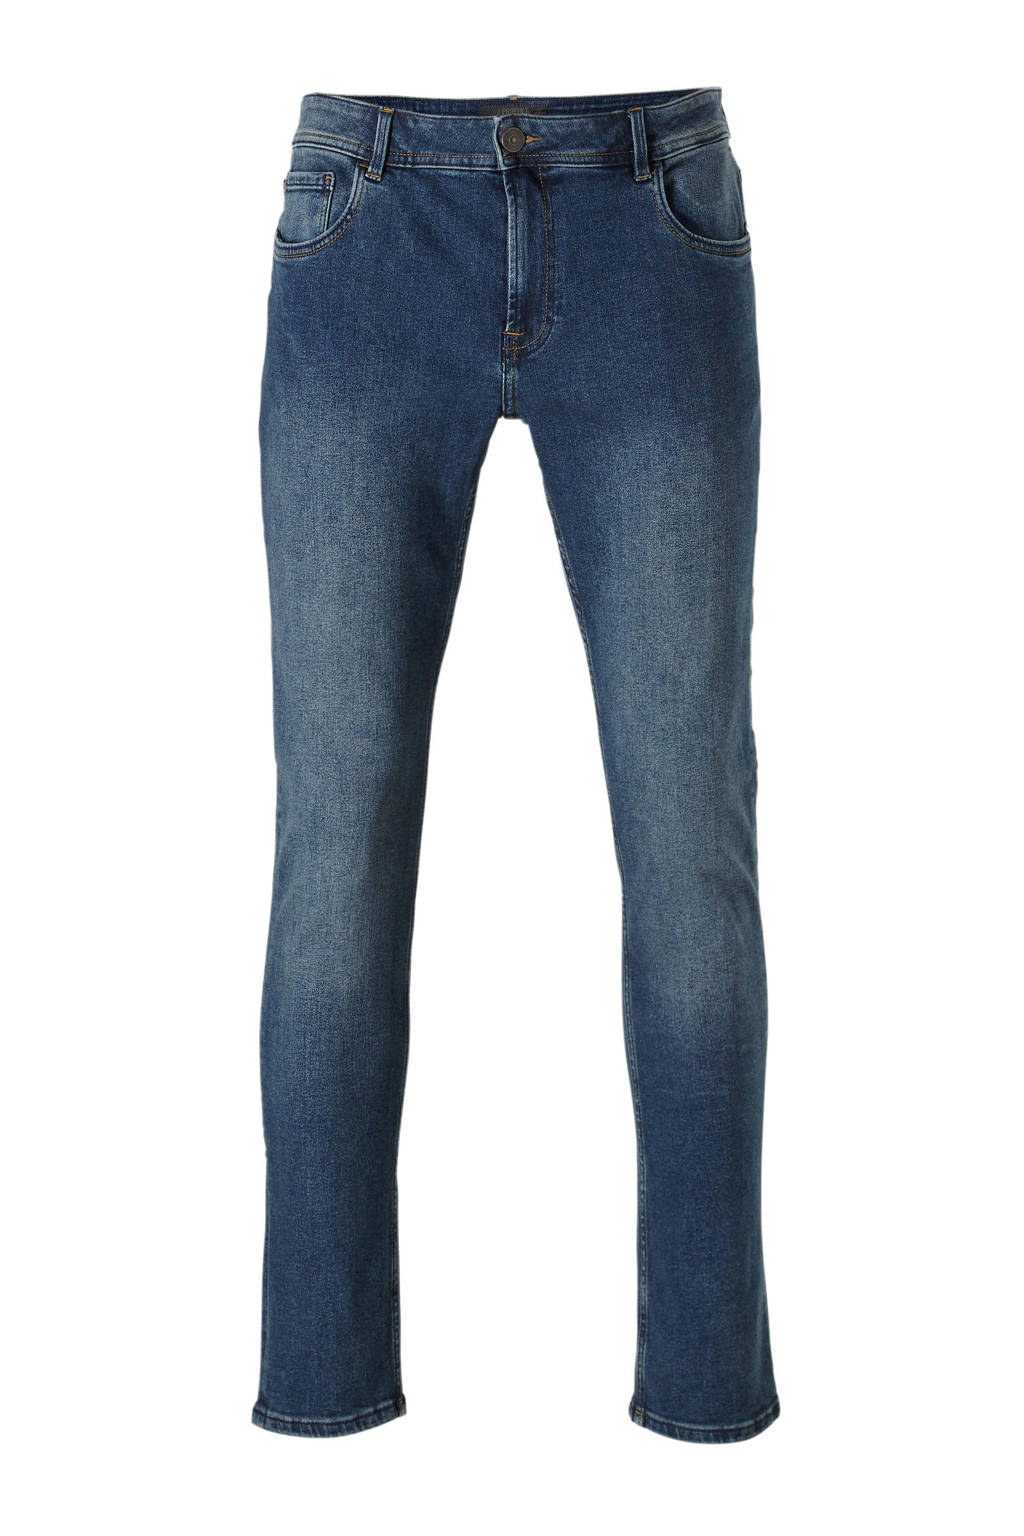 PRODUKT  skinny skinny fit jeans, Dark denim